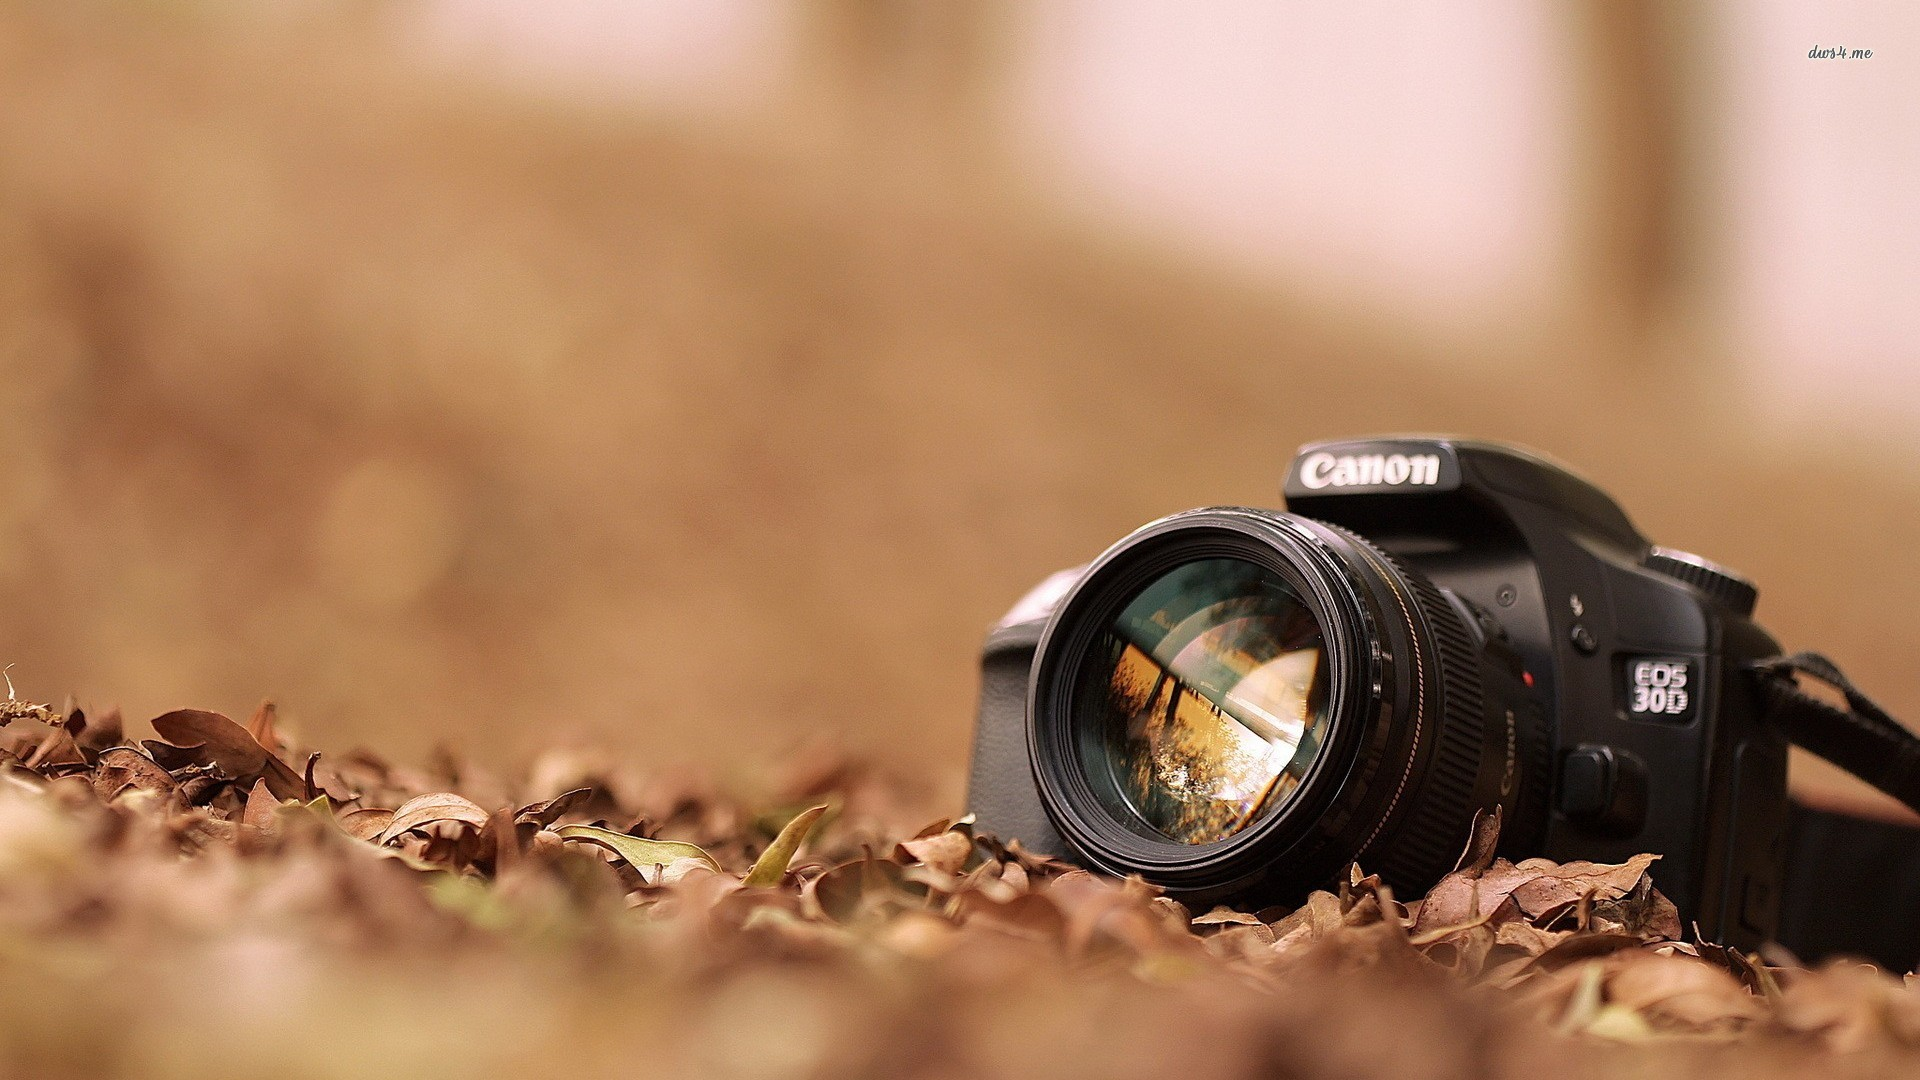 Photography Camera Canon Wallpaper Hd Images 3 HD 1920x1080